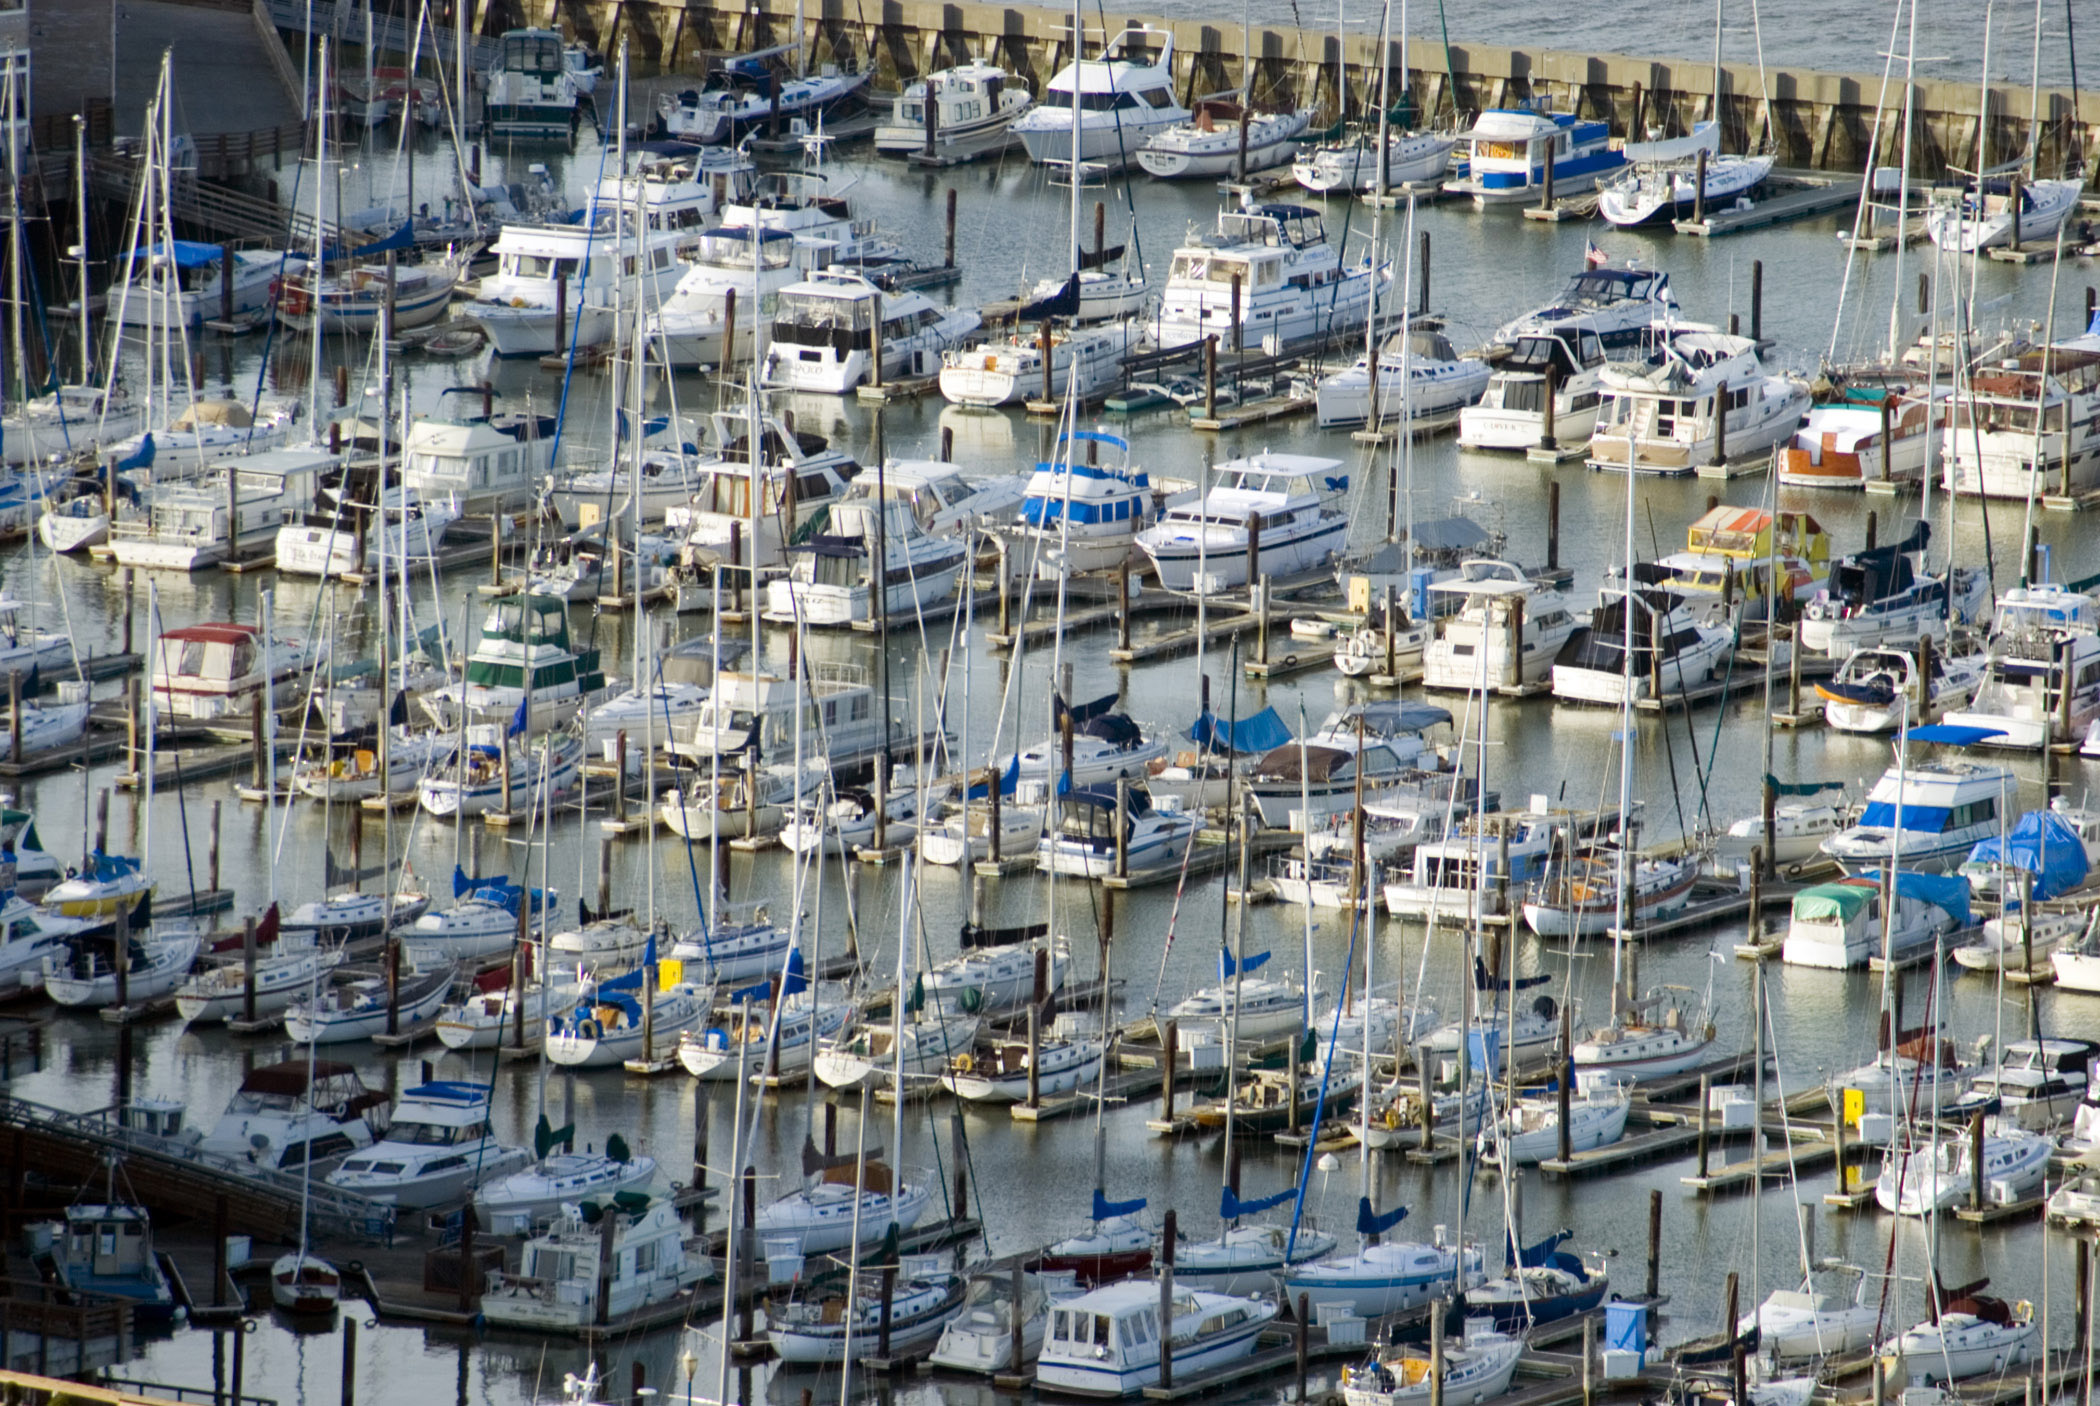 Aerial view of the San Francisco marina with rows of moored pleasure boats and yachts on sheltered water